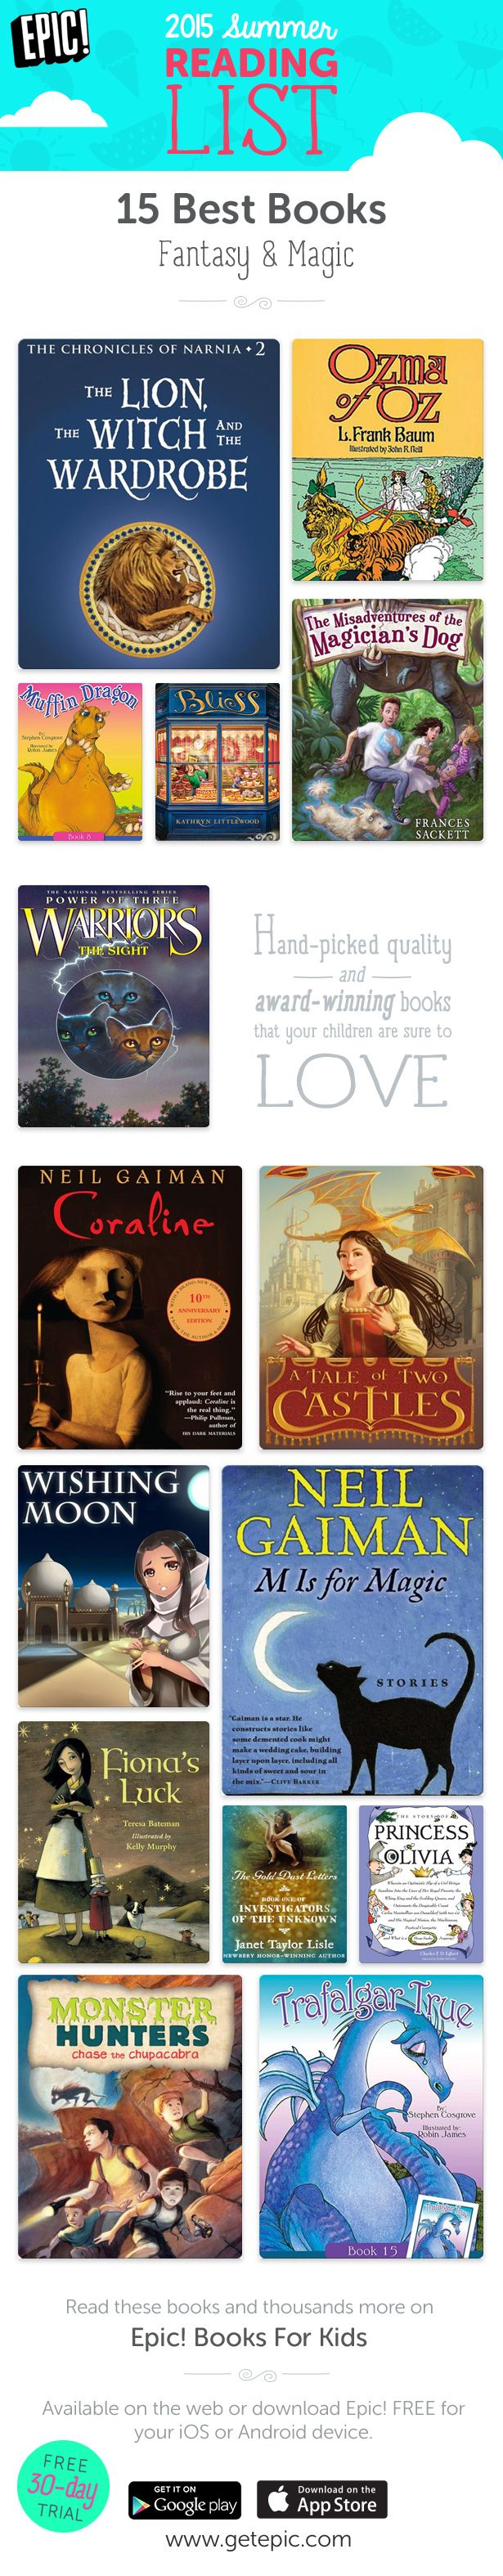 Check Out 15 Of Our Favorite Summer Reading Books In The Fantasy And Magic  Genre!